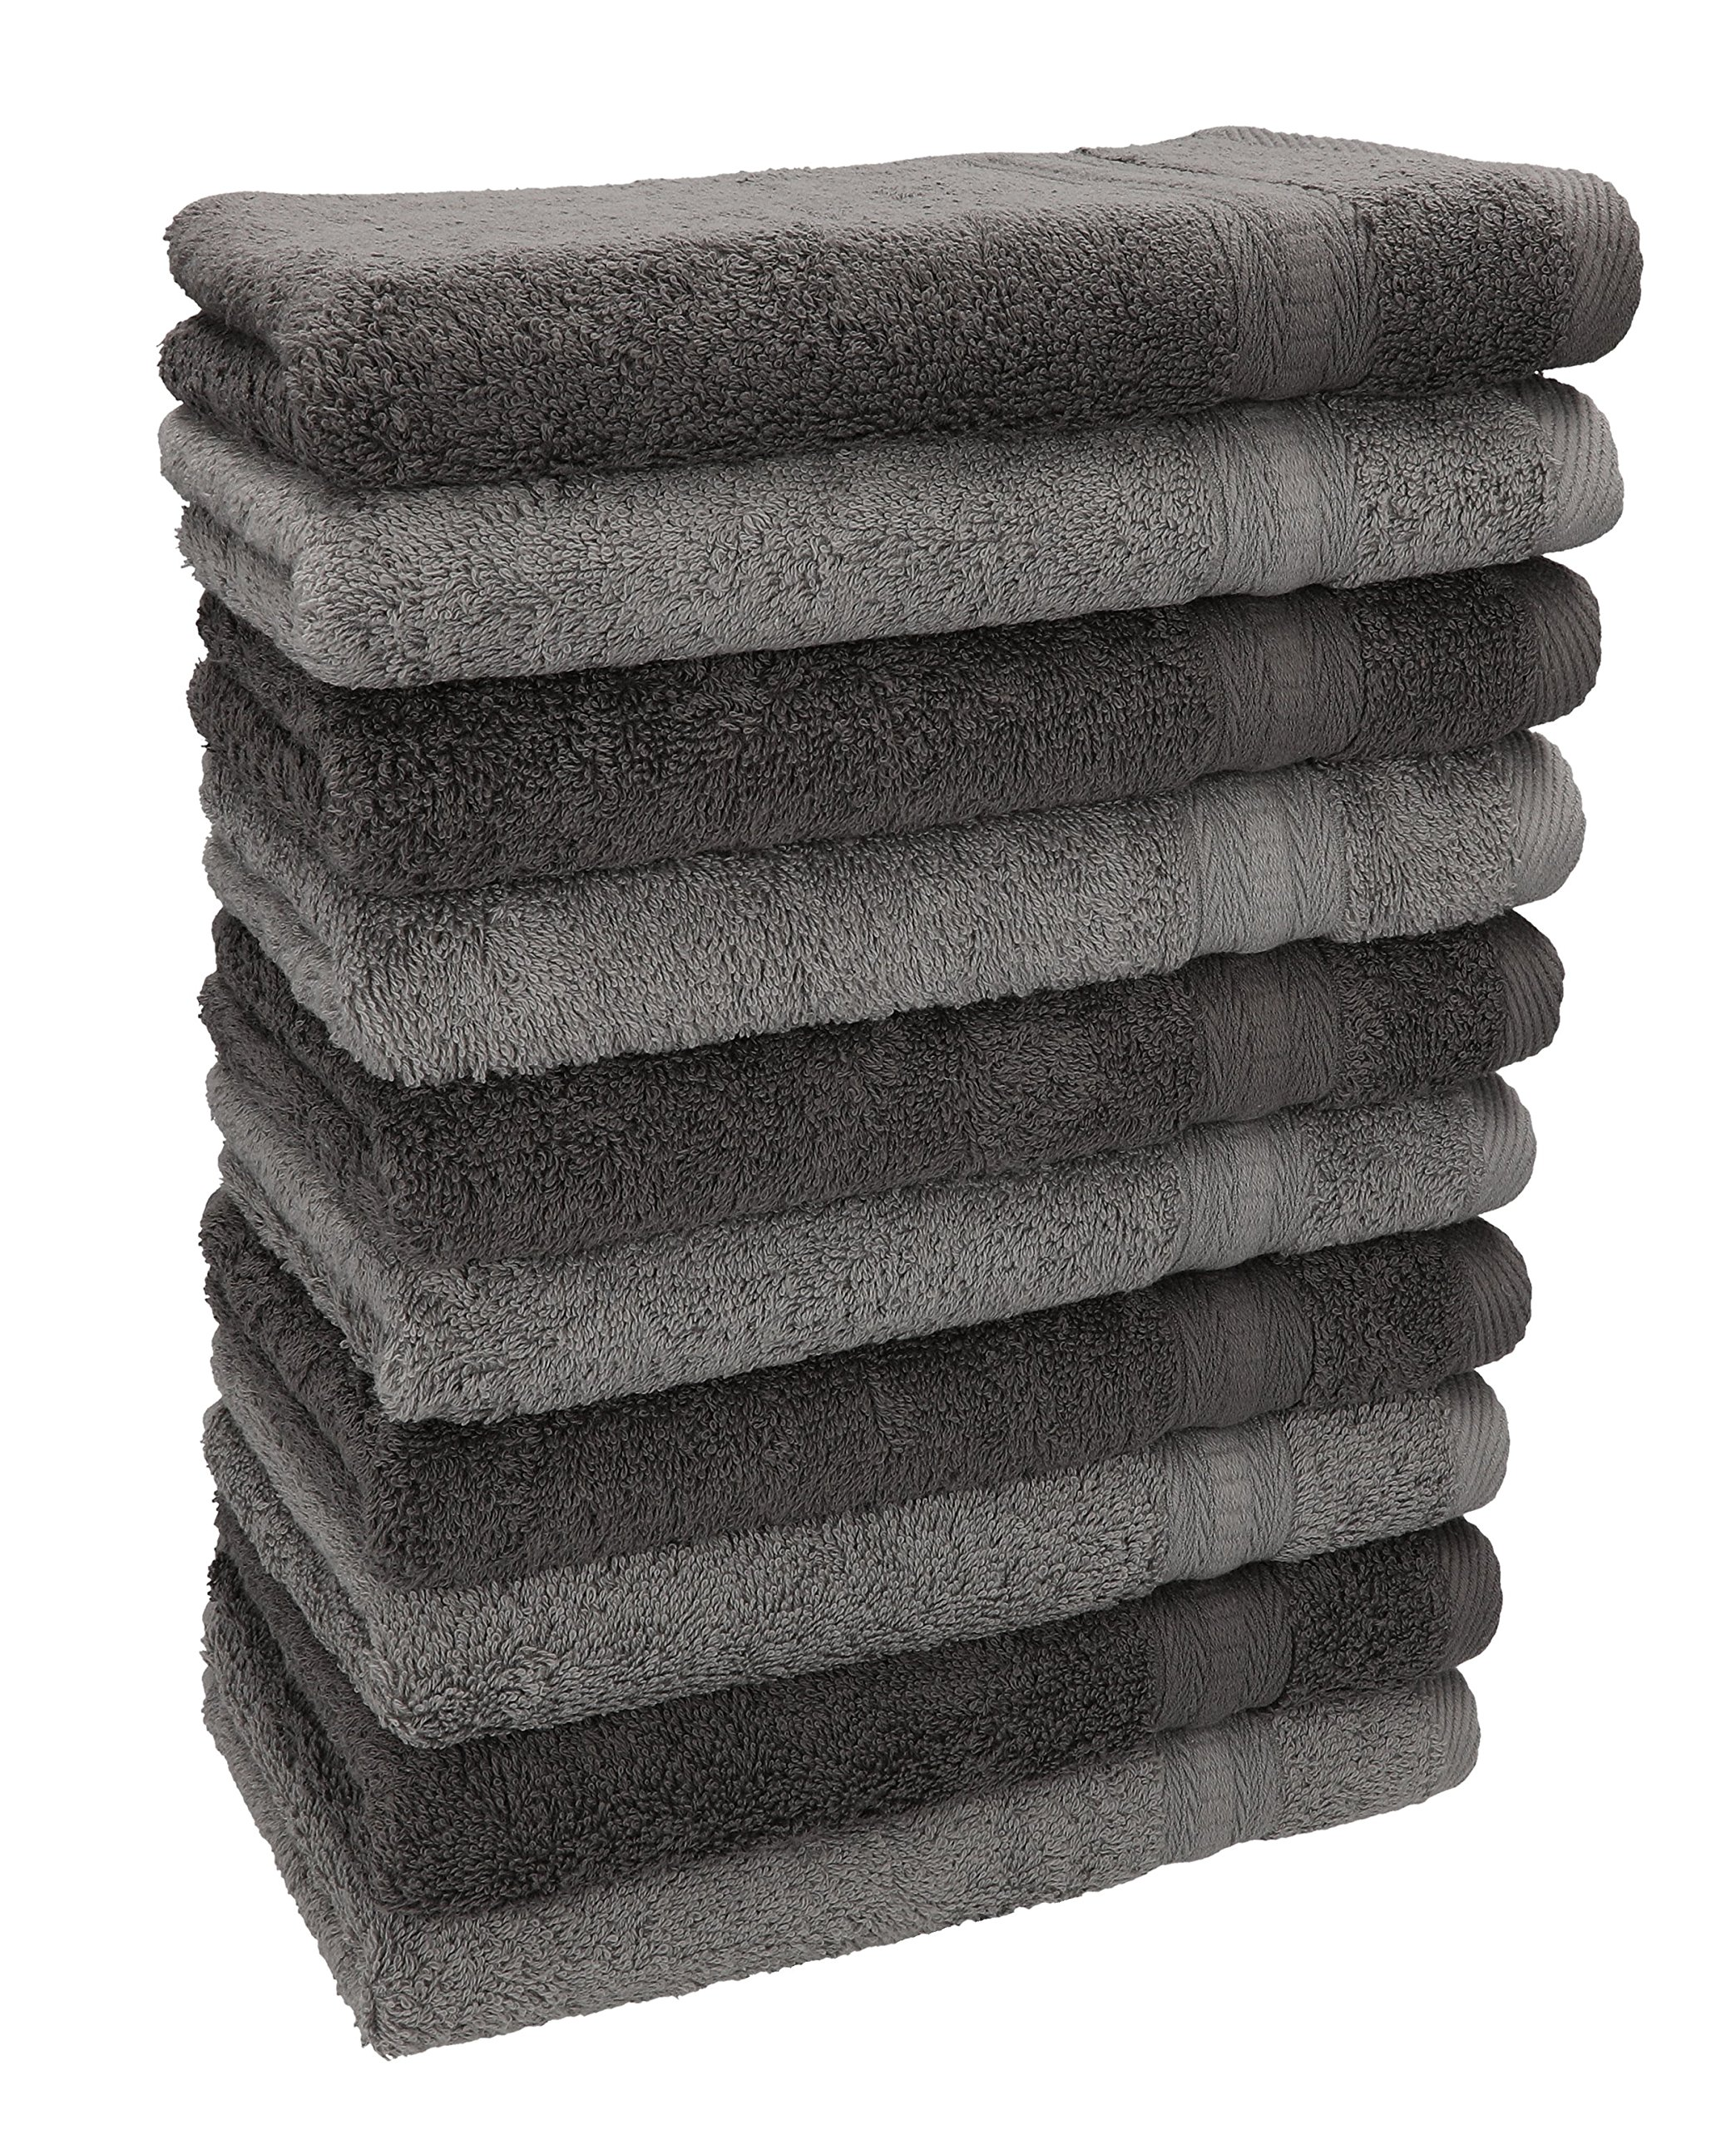 Cheap Guest Towels: Small Hand Towels Bathroom: Amazon.co.uk